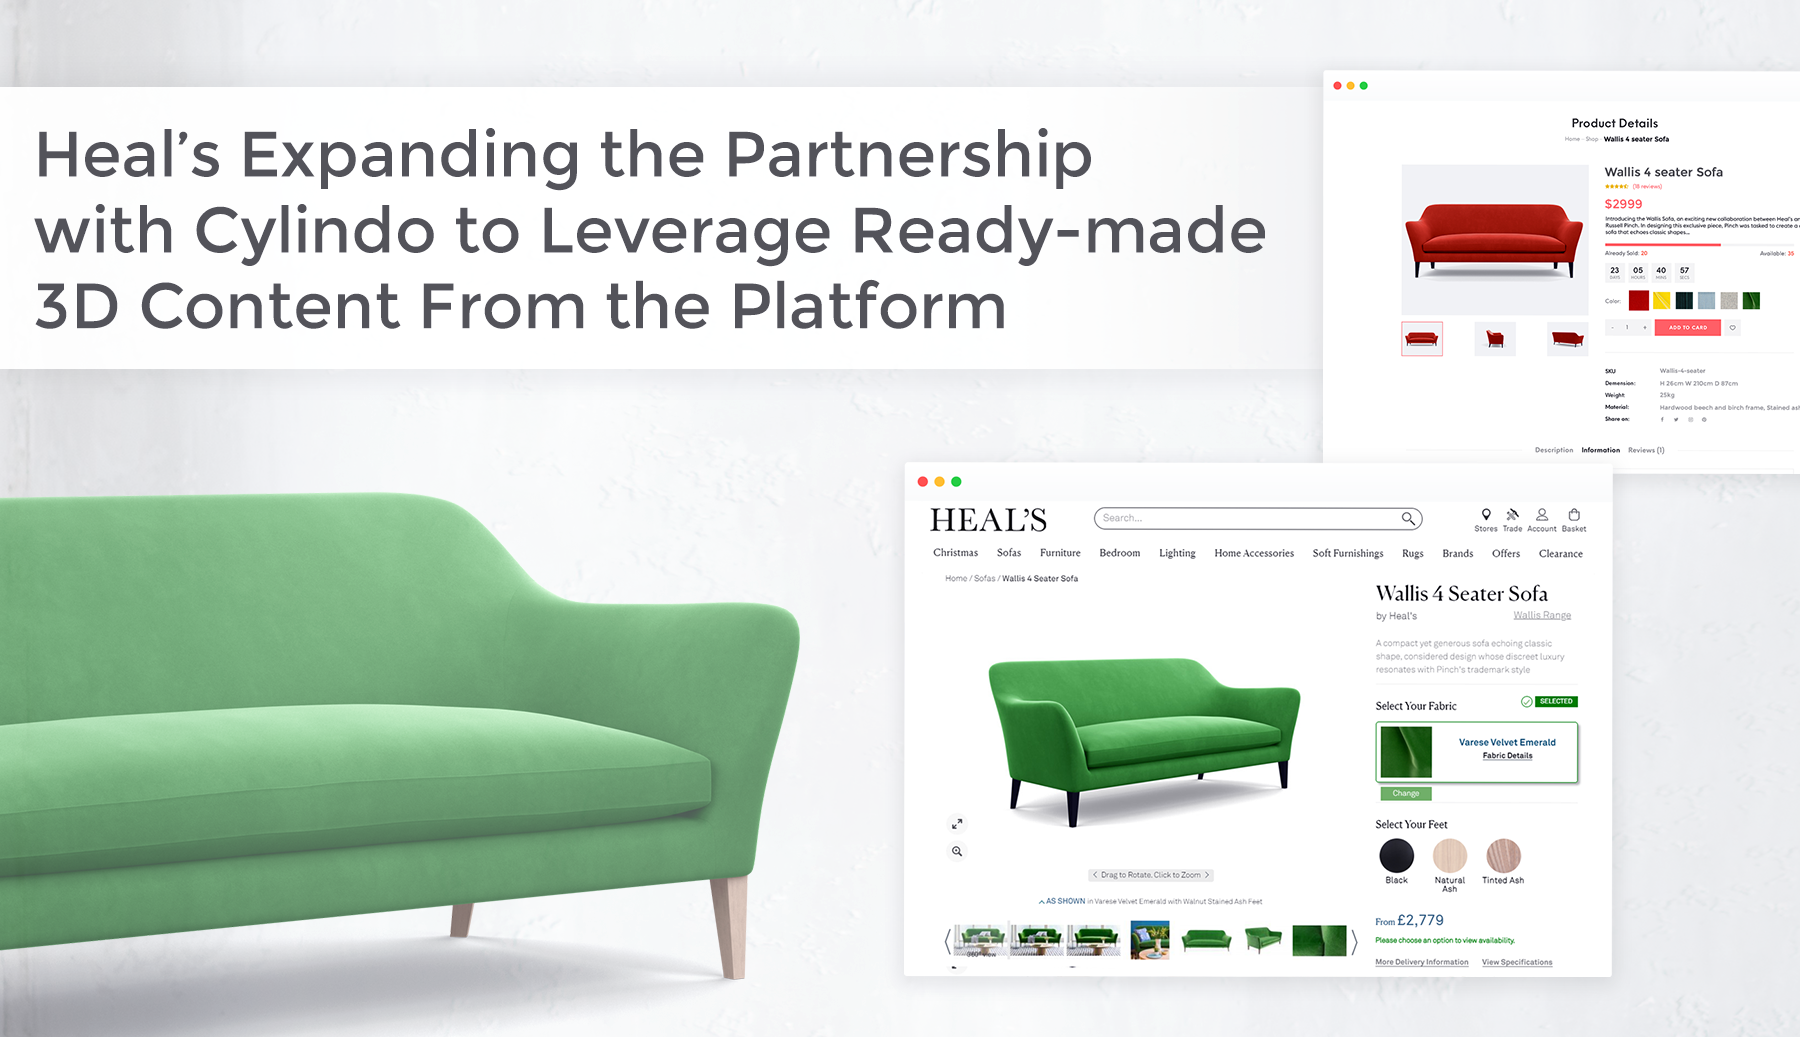 Heal's green Wallis 4 Seater Sofa: Heal's Expanding the Partnership with Cylindo